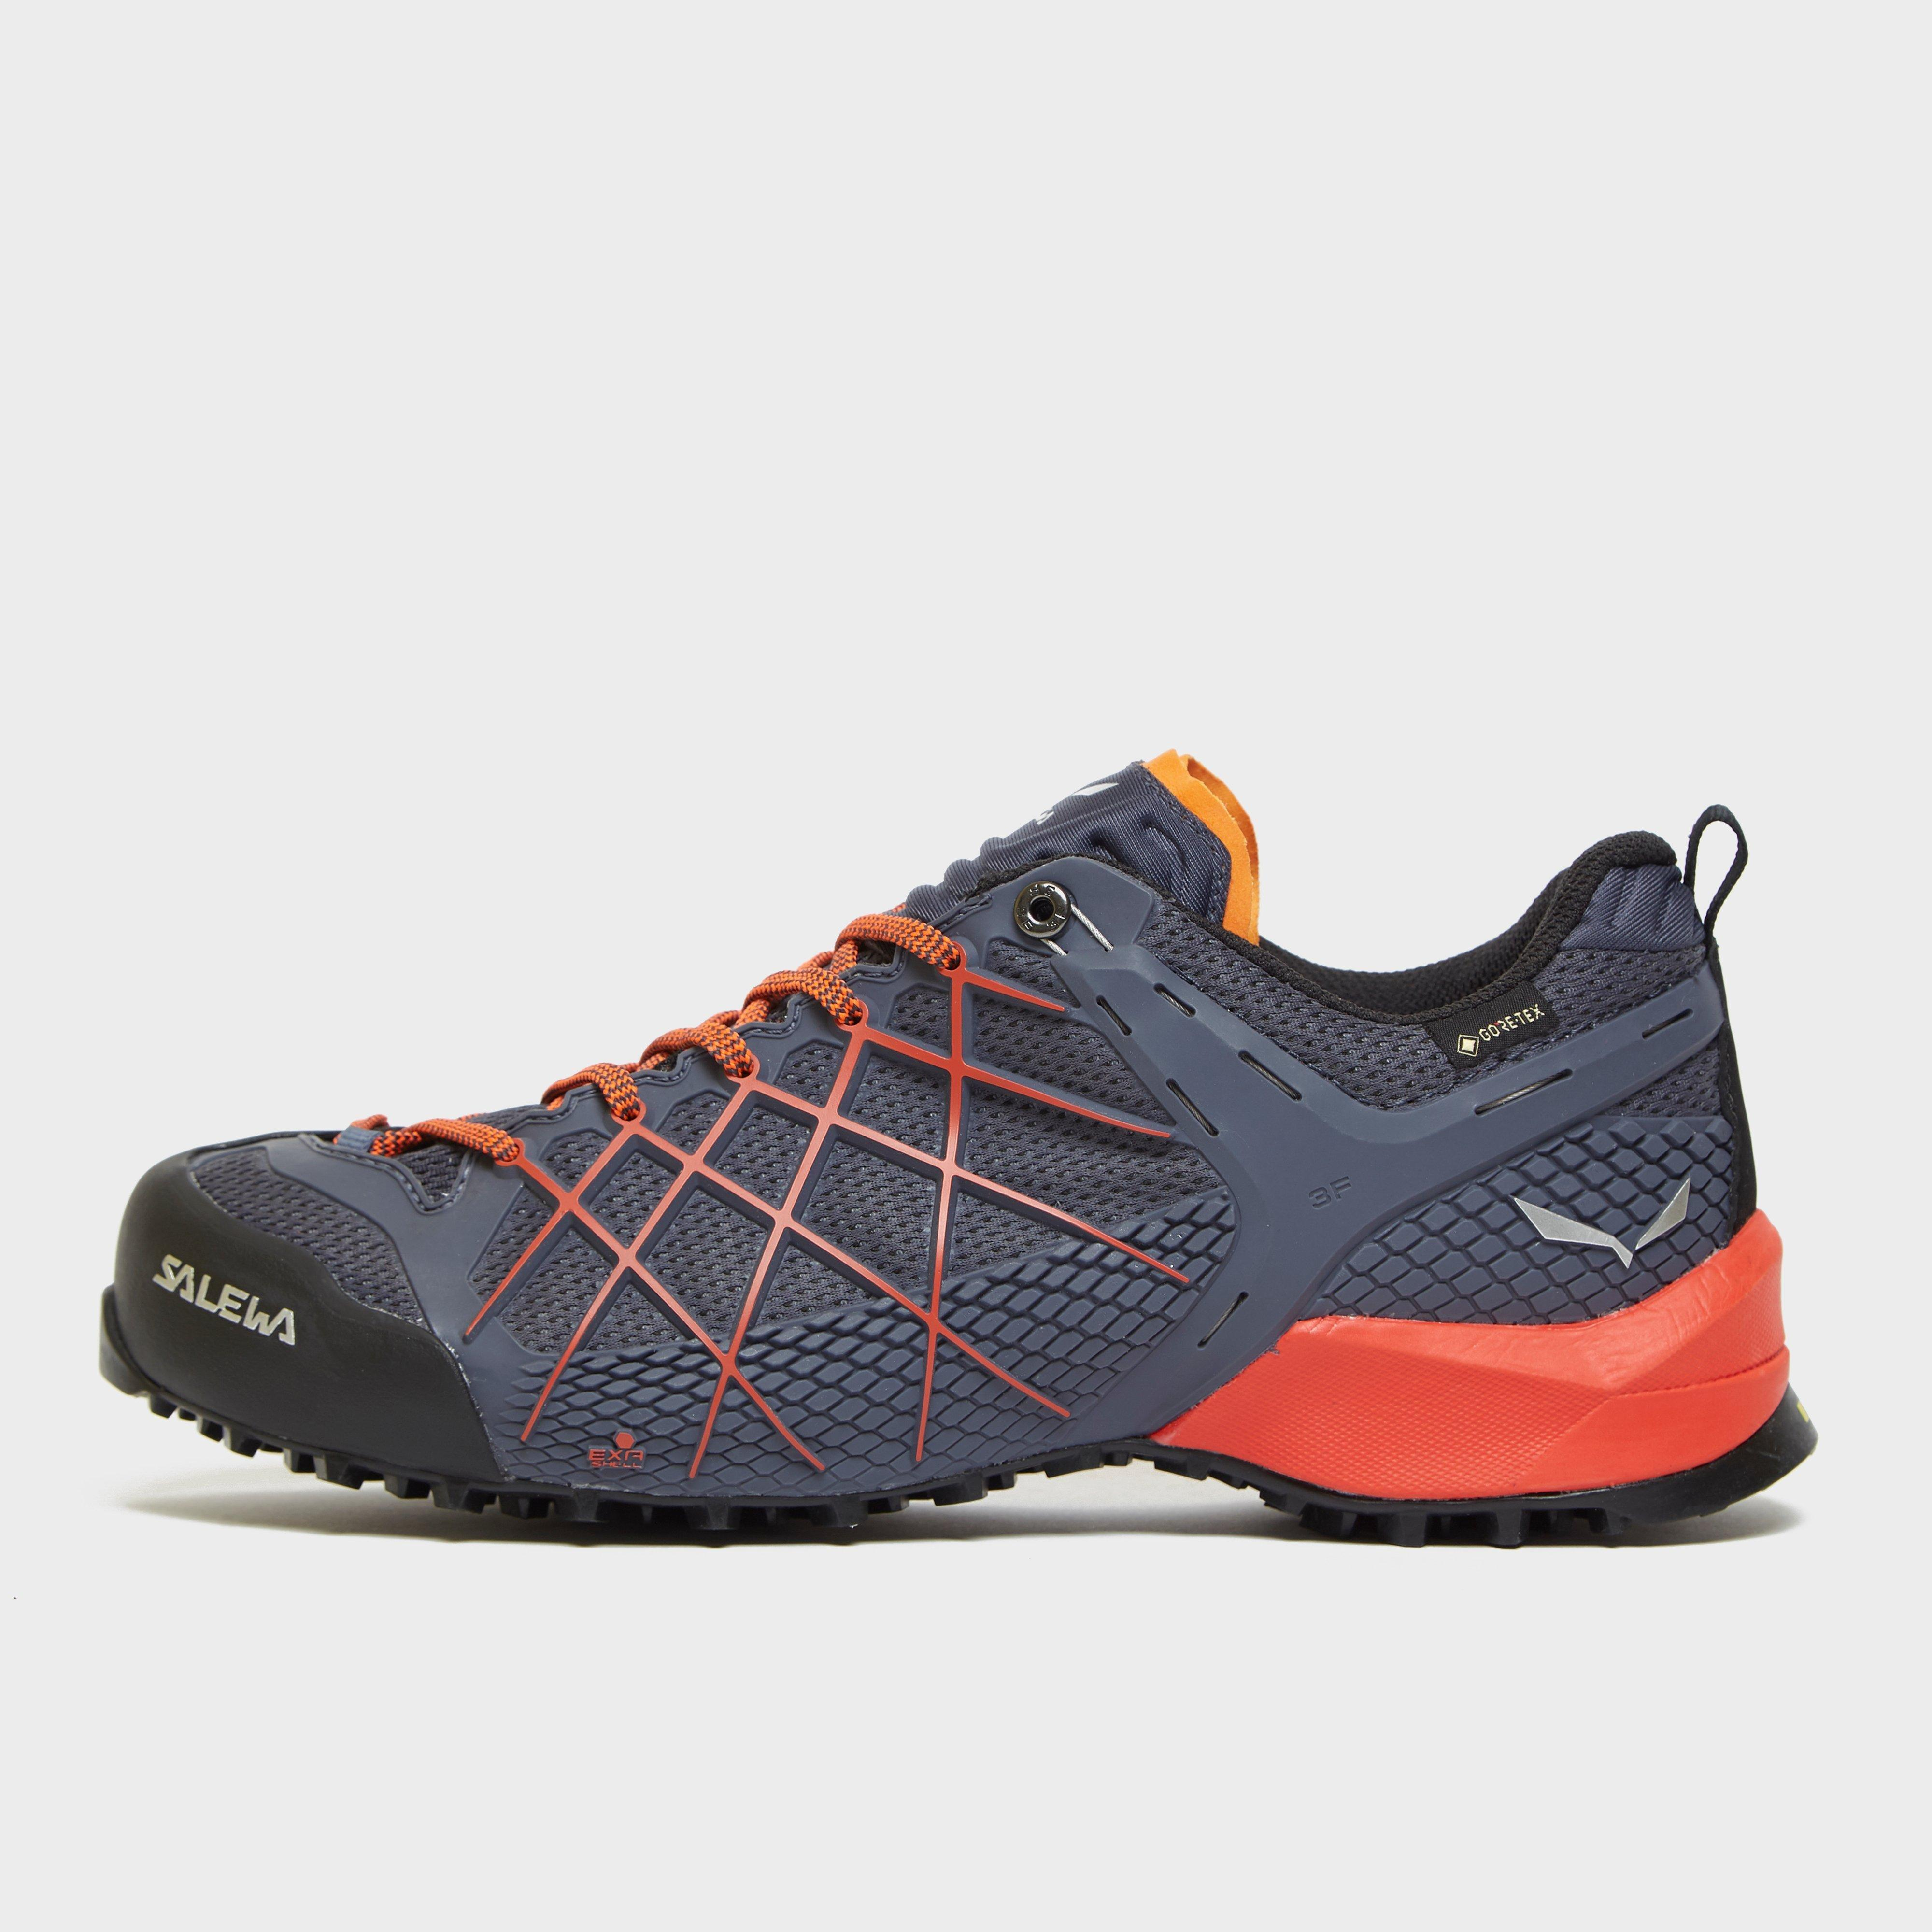 Salewa Mens Wildfire Gore-tex Approach Shoes - Navy/org  Navy/org